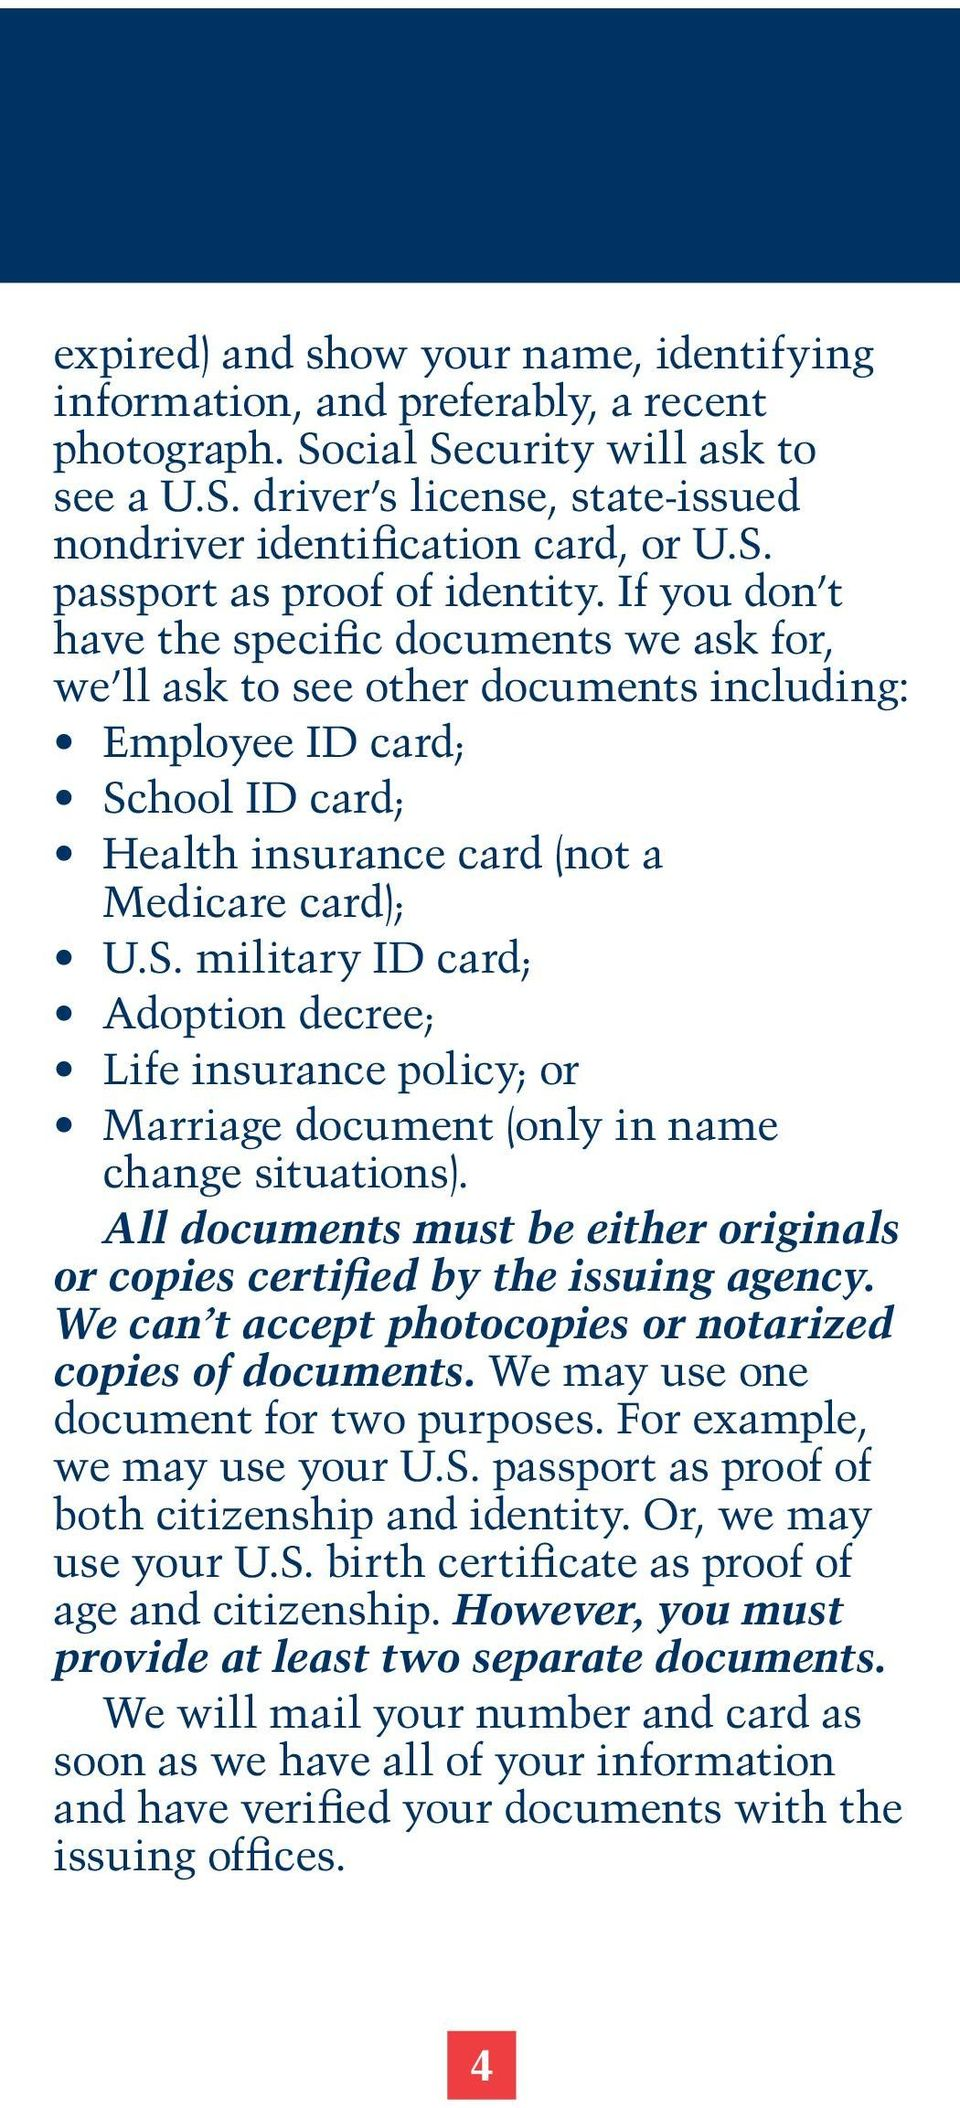 hool ID card; Health insurance card (not a Medicare card); U.S. military ID card; Adoption decree; Life insurance policy; or Marriage document (only in name change situations).